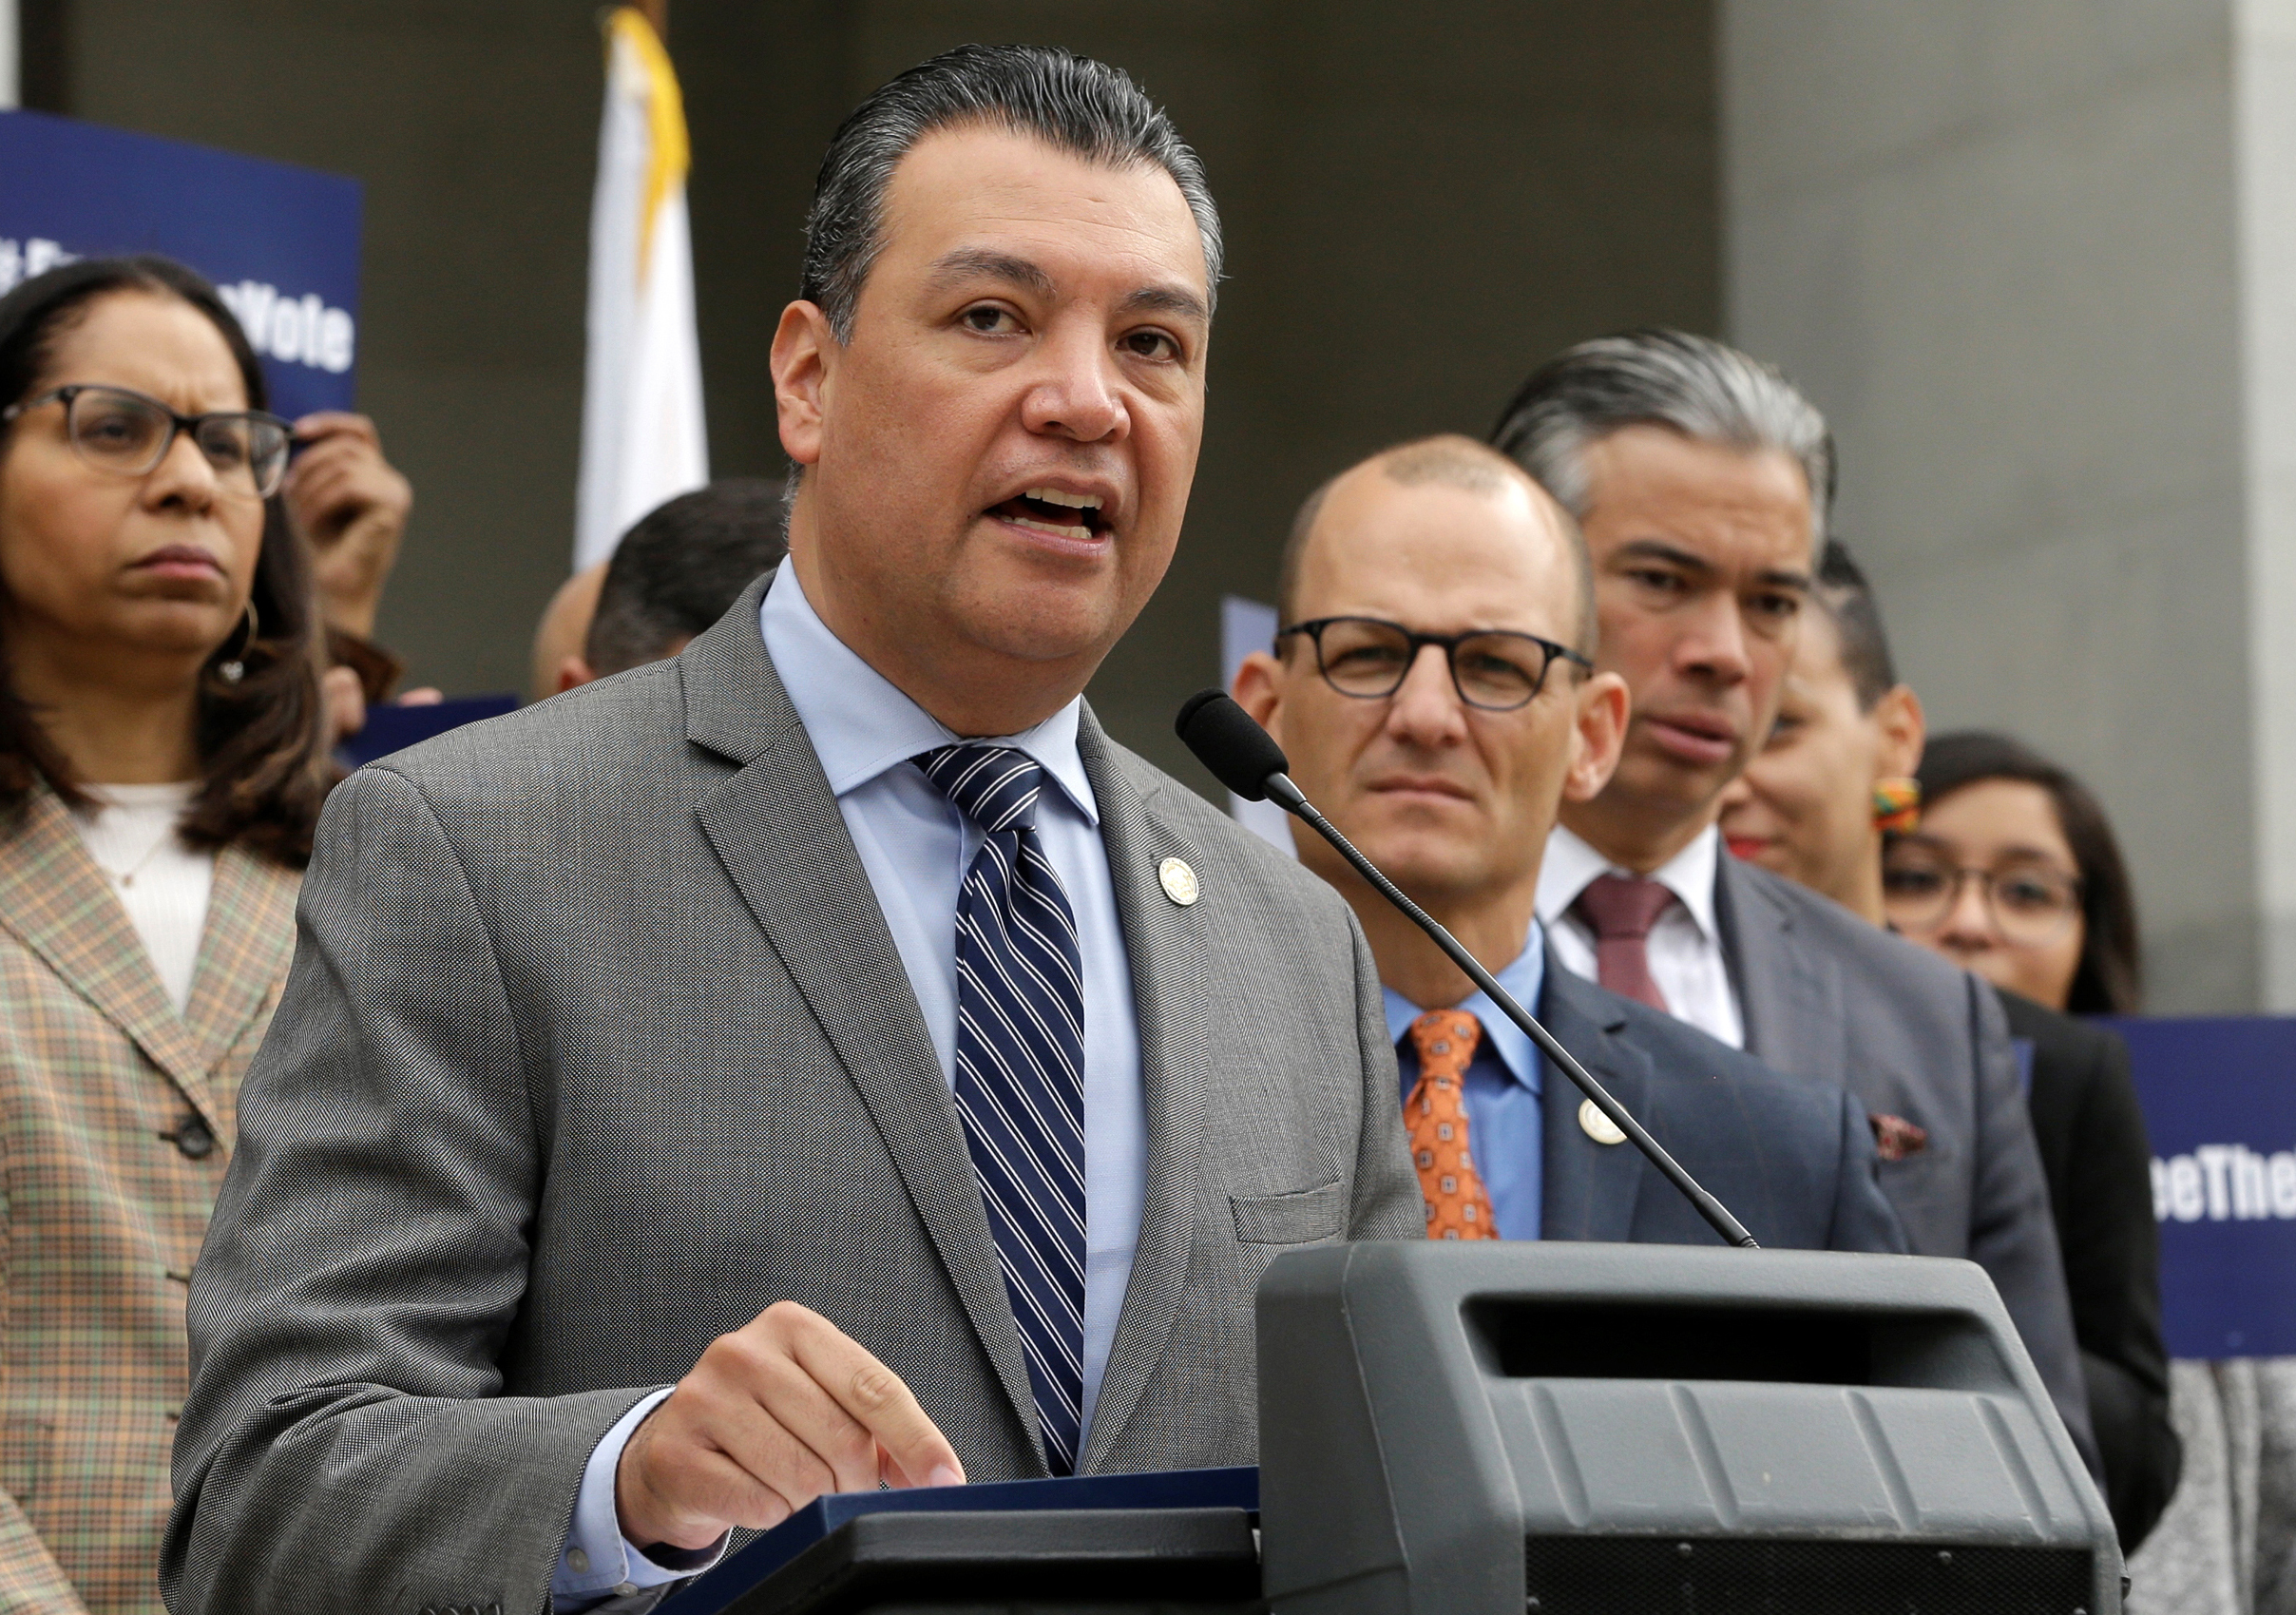 In this Jan. 28, 2019, file photo, California Secretary of State Alex Padilla talks during a news conference at the Capitol in Sacramento, Calif. California Gov. Gavin Newsom appointed Secretary of State Alex Padilla on Tuesday, Dec. 22, 2020, as the state's next U.S. senator to fill the seat being vacated by Vice President-elect Kamala Harris.